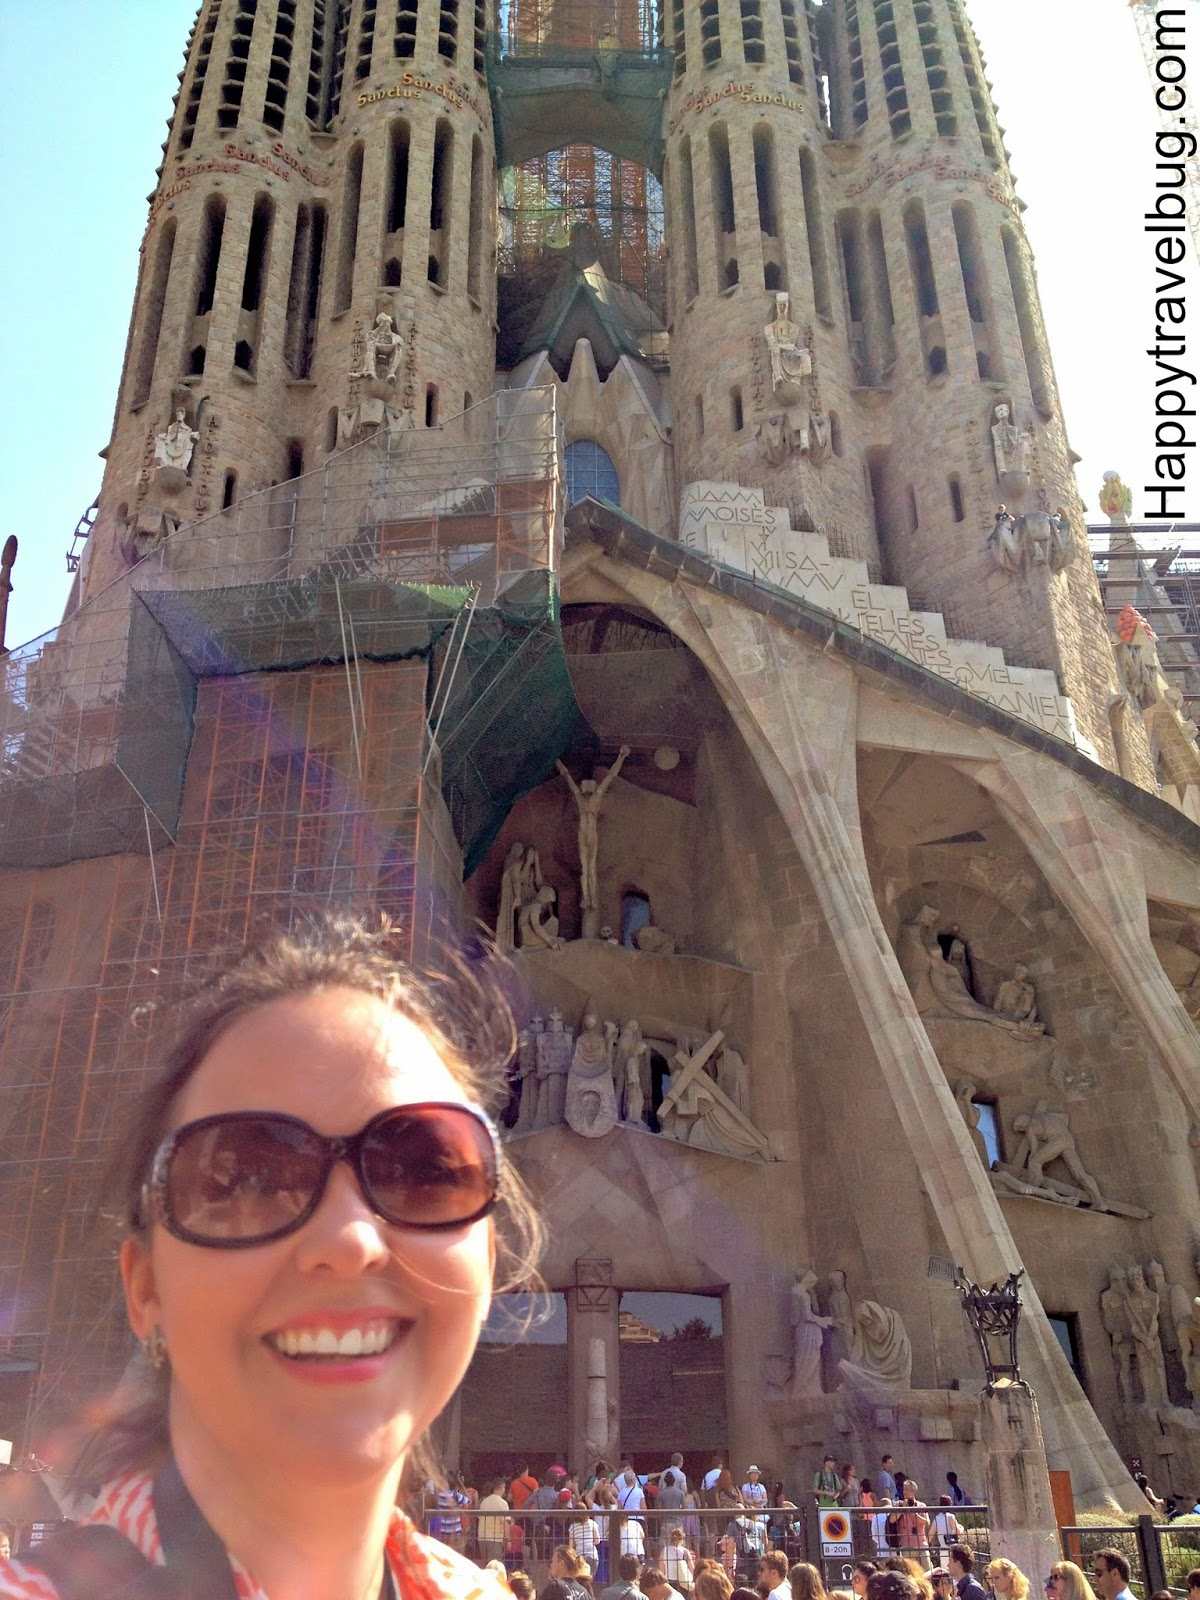 Happy travel bug at La Sagrada Familia in Barcelona, Spain